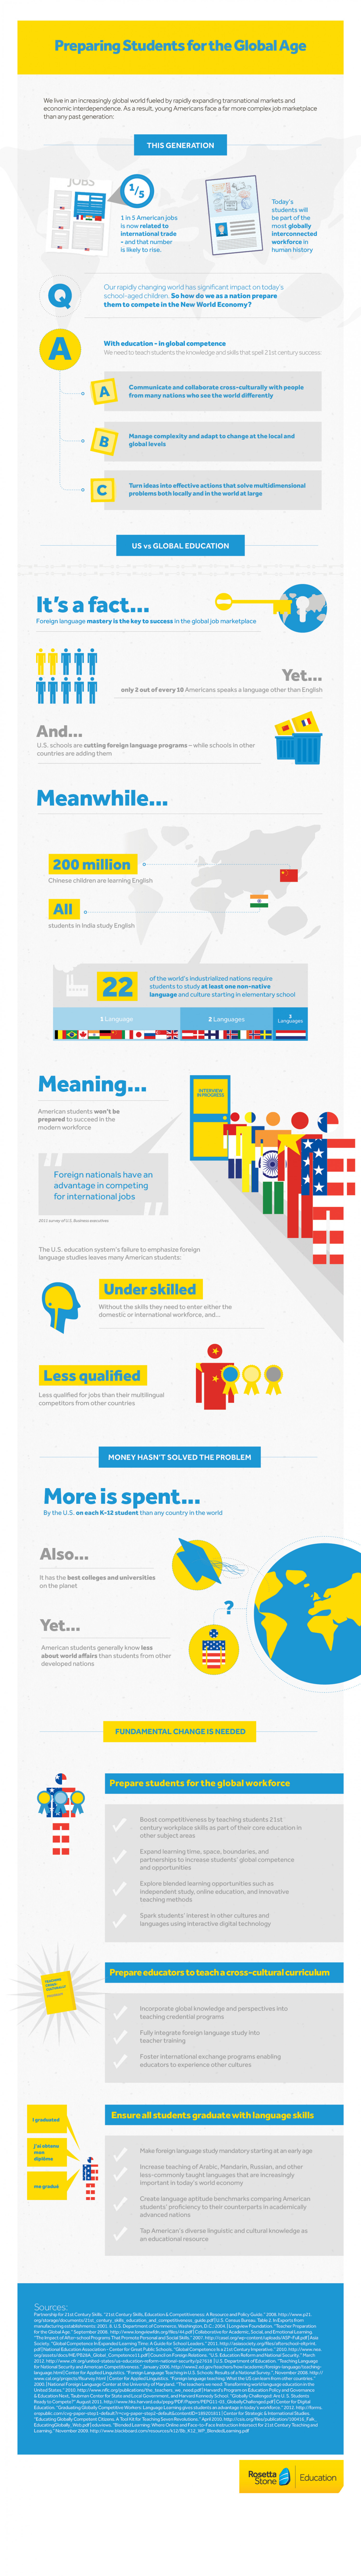 Preparing Students for the Global Age Infographic